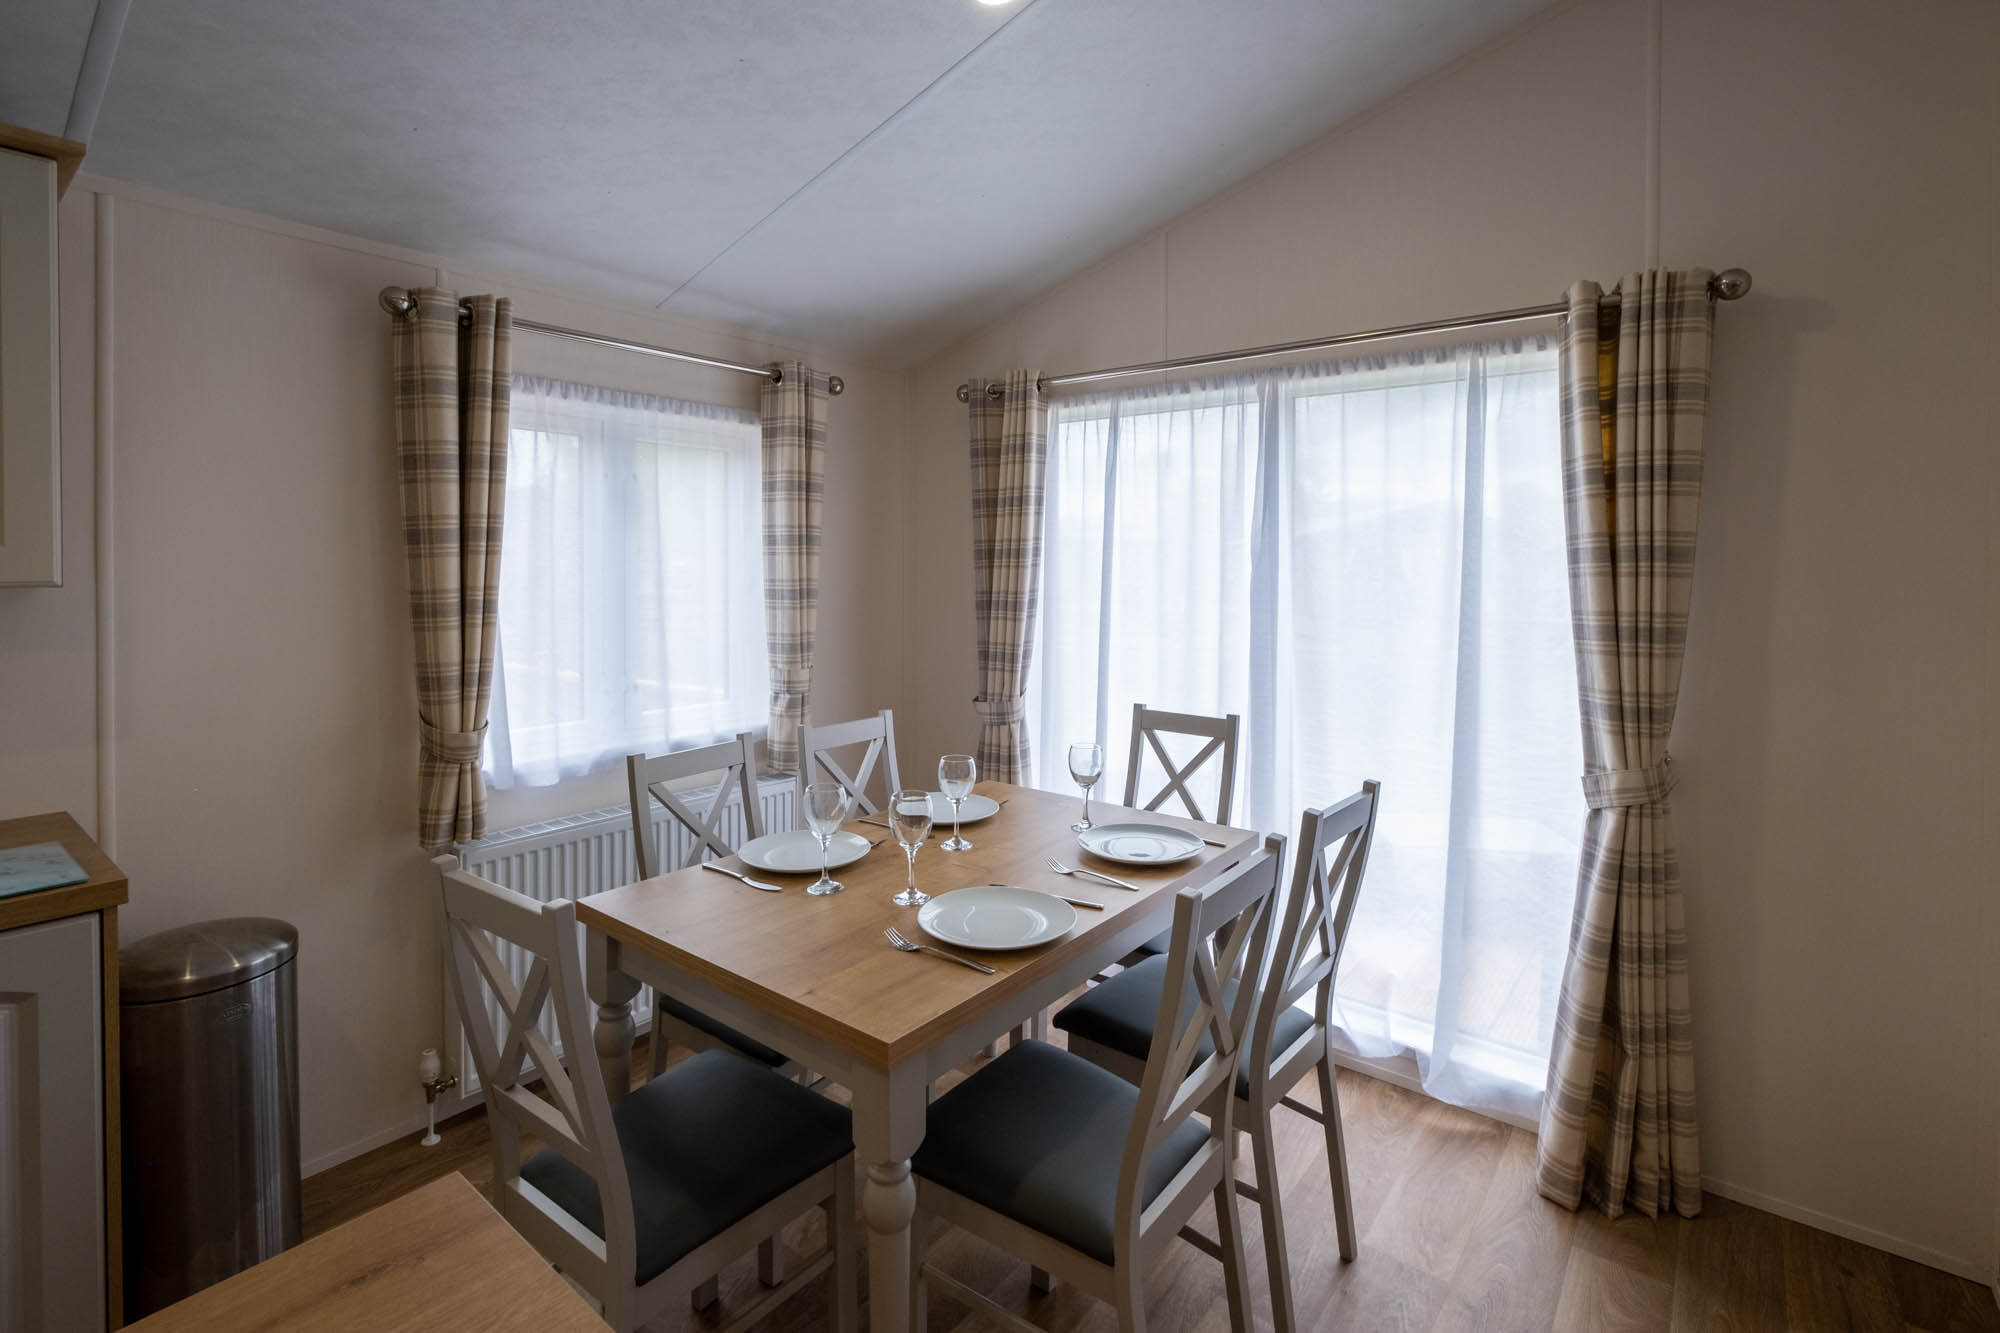 Dining Room with Checked Curtains